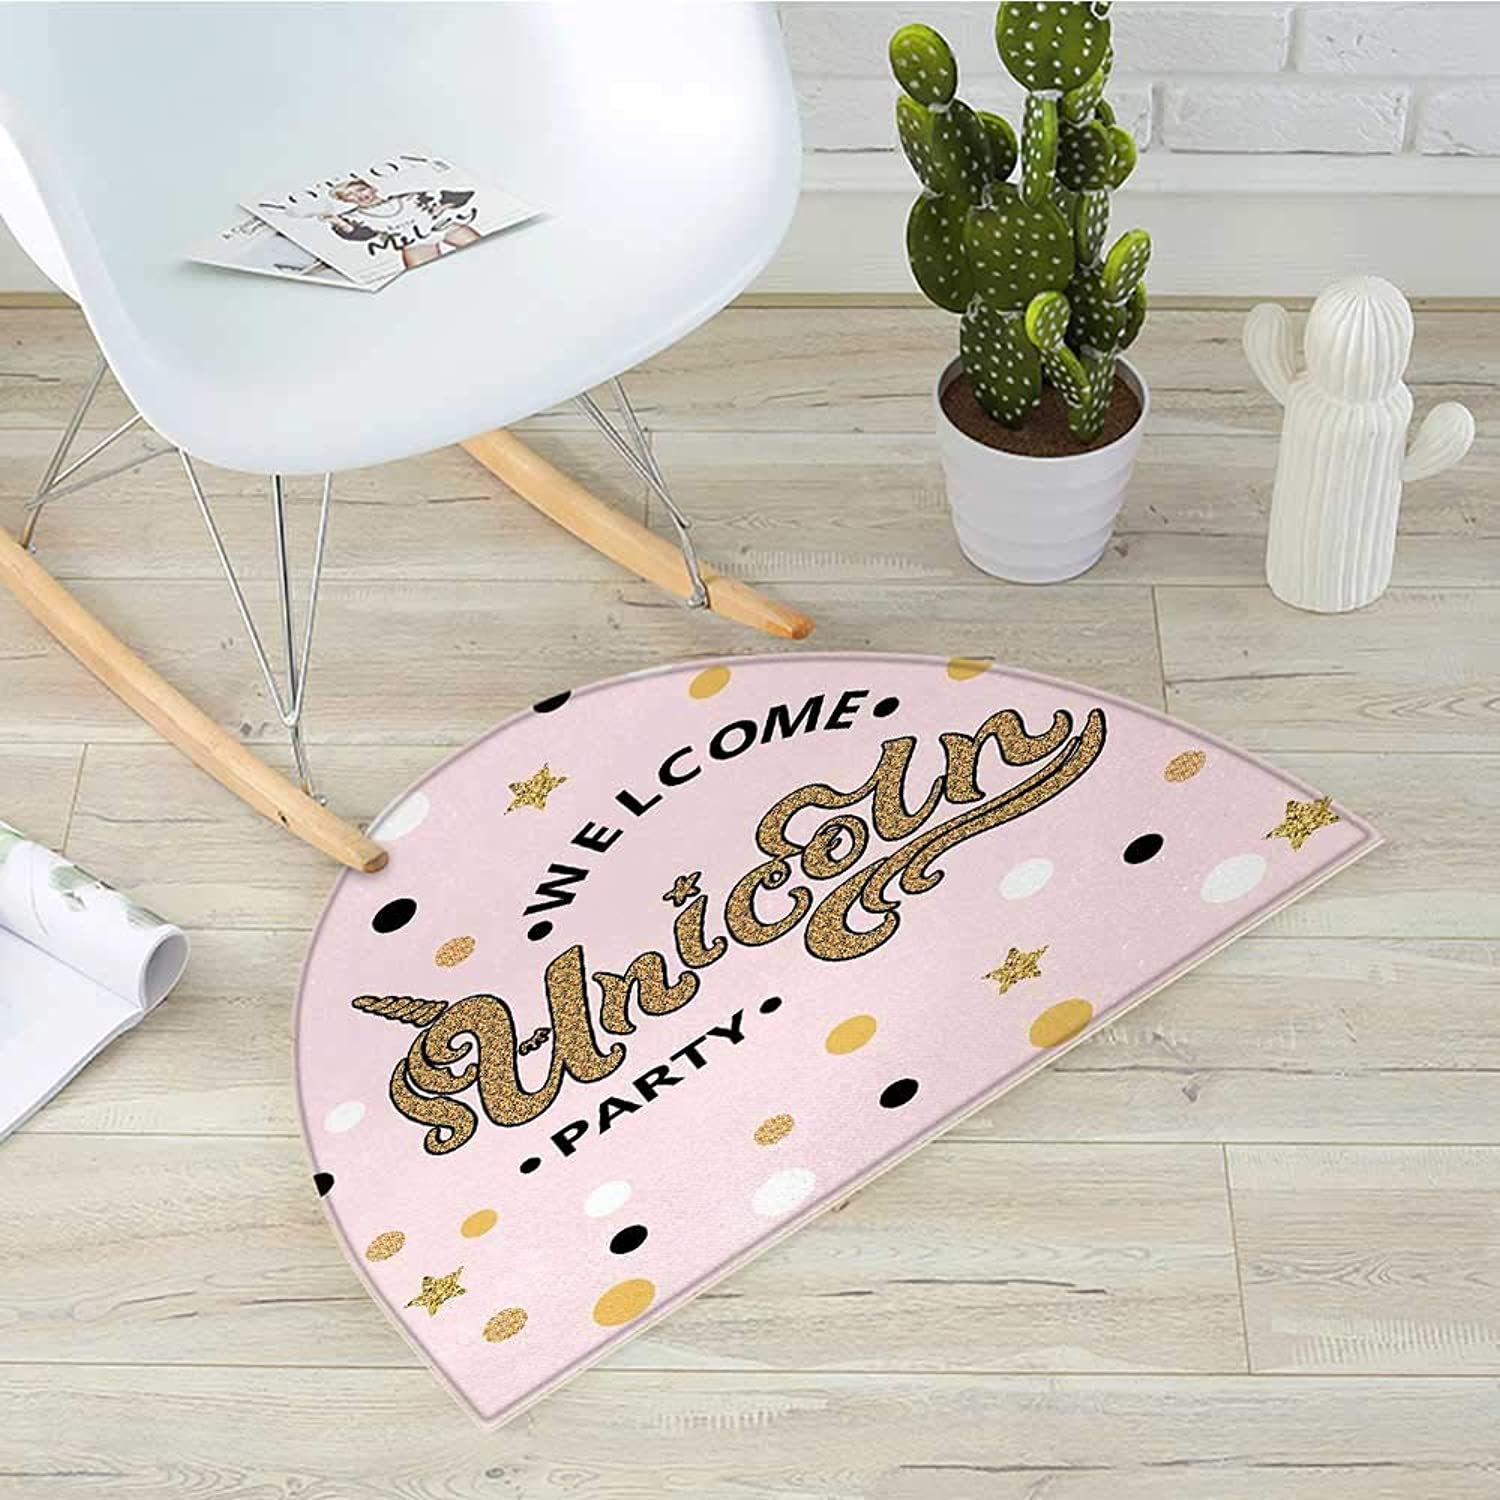 Unicorn Party Half Round Door mats Hand Drawn Lettering with Pale Pink Dots and Stars Background Bathroom Mat H 31.5  xD 47.2  Apricot Pale Pink Black